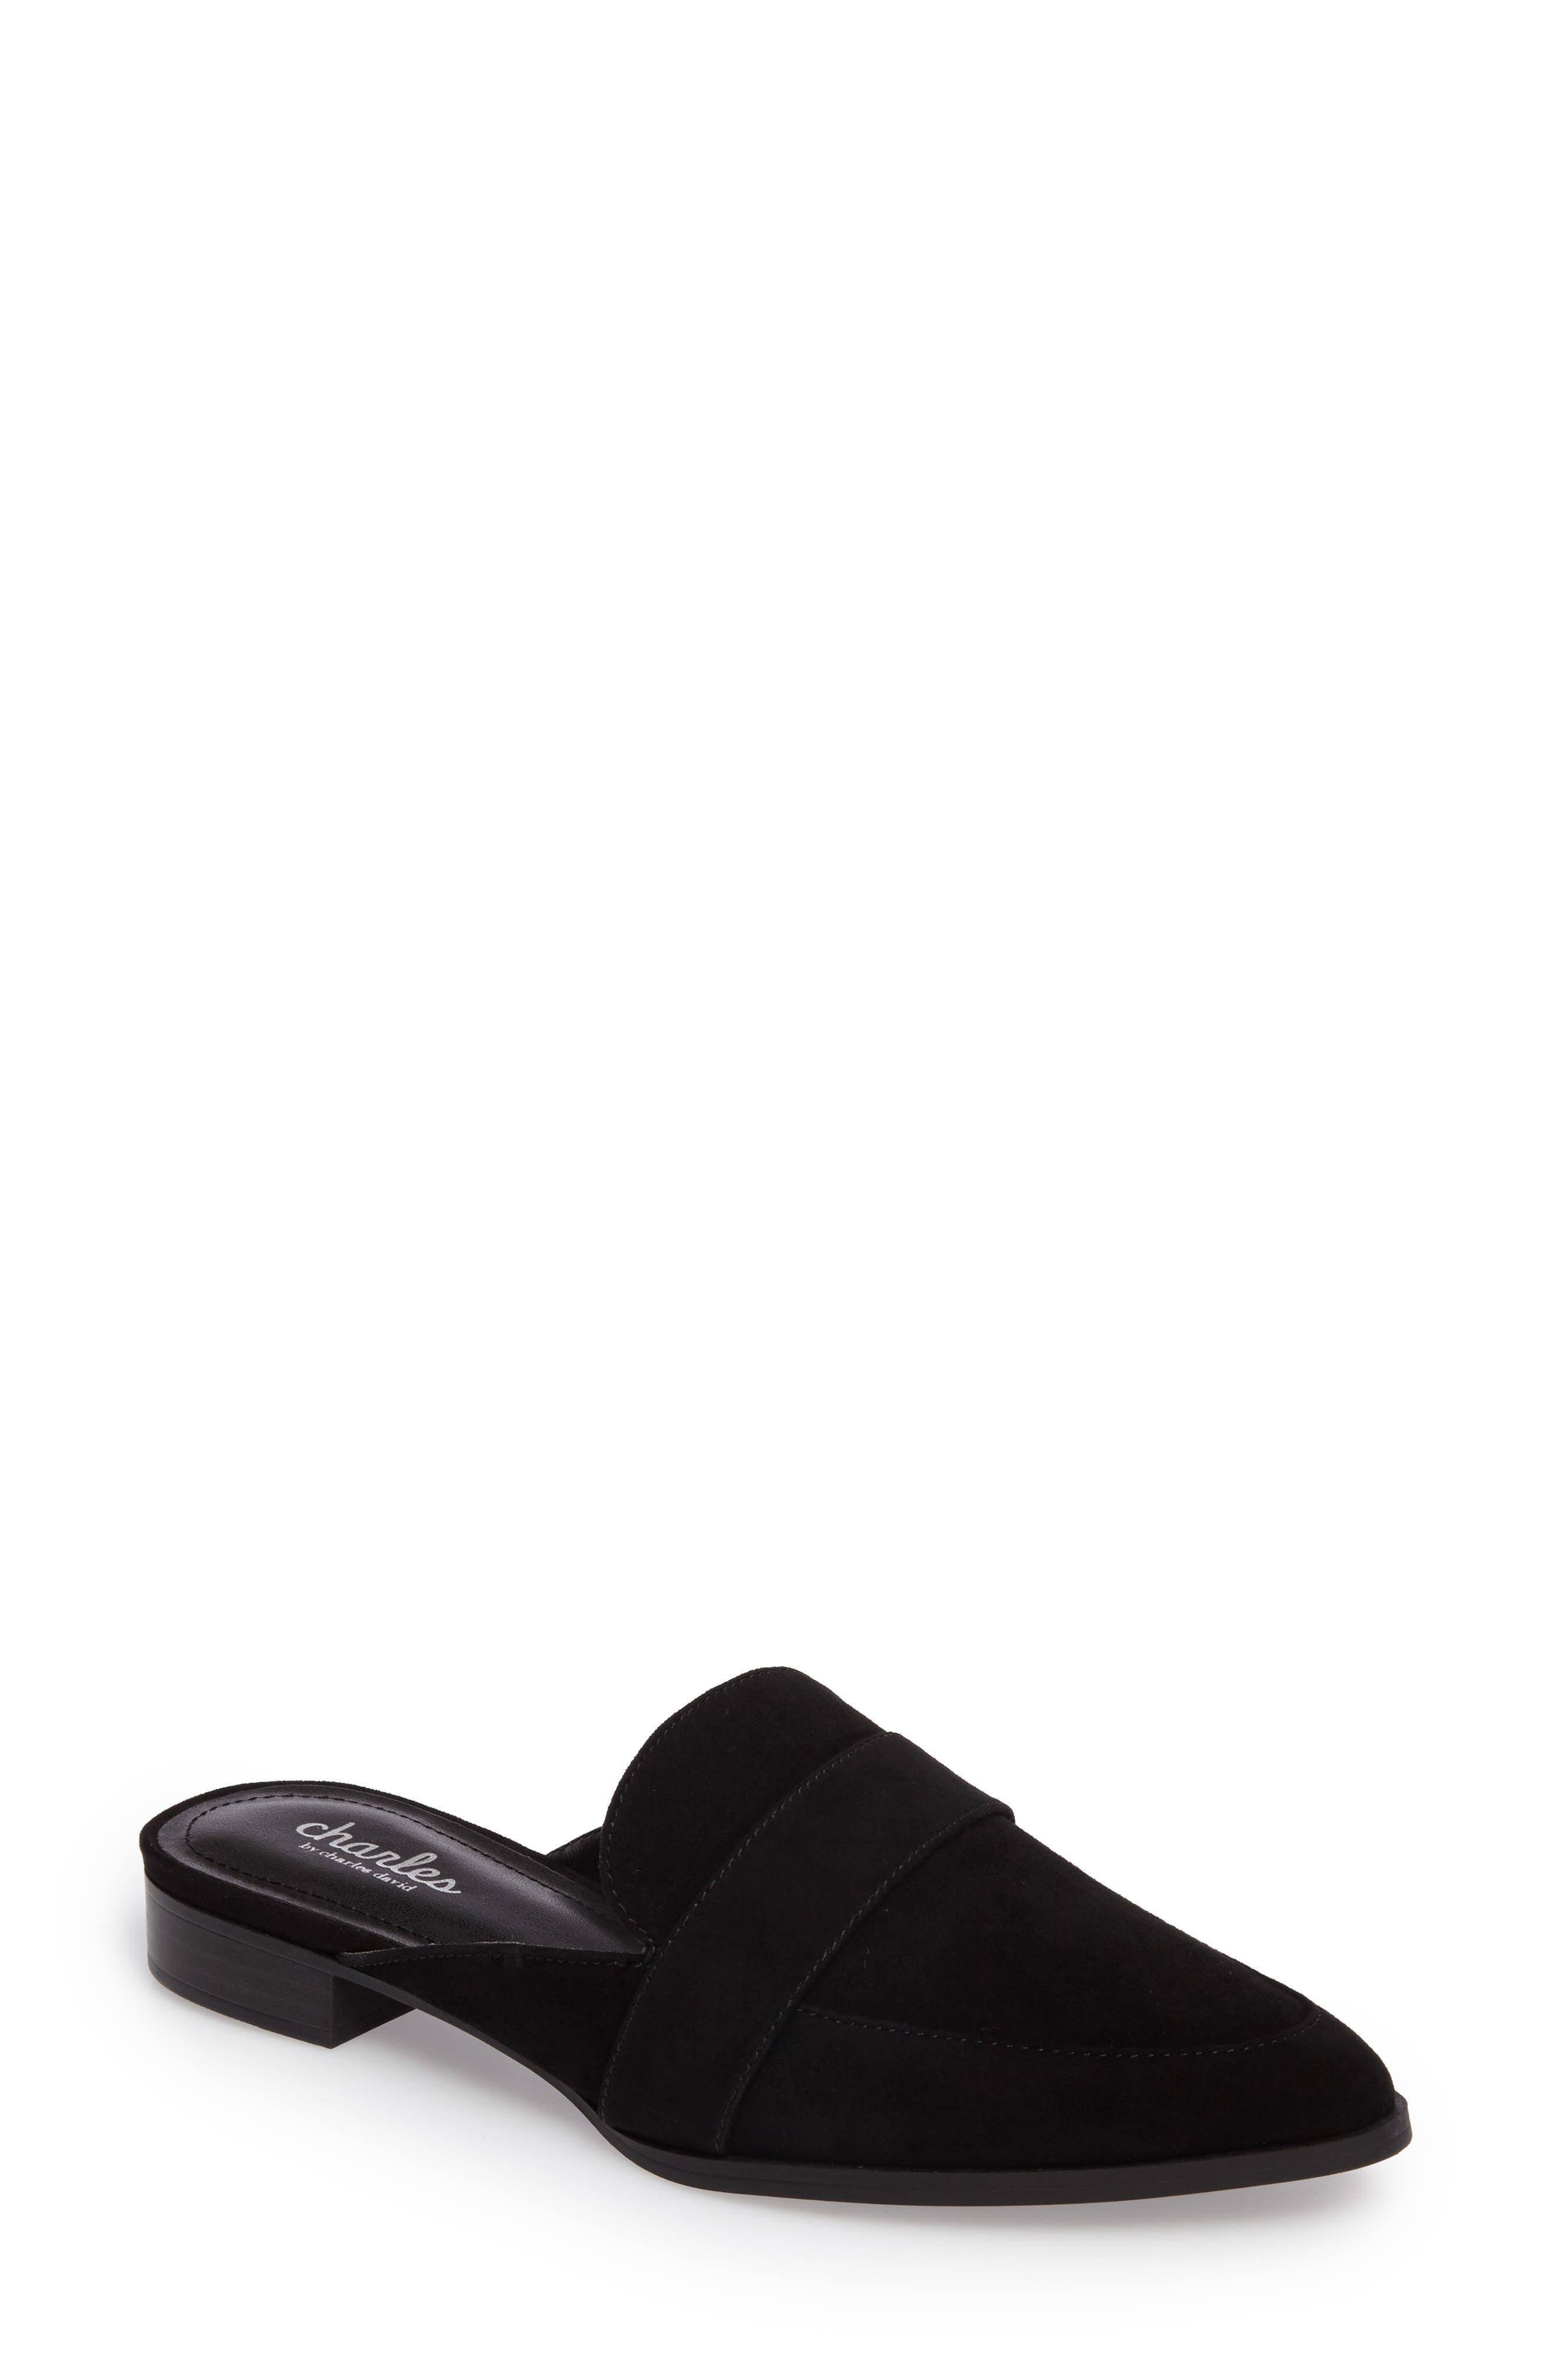 Charles by Charles David Emma Loafer Mule (Women)